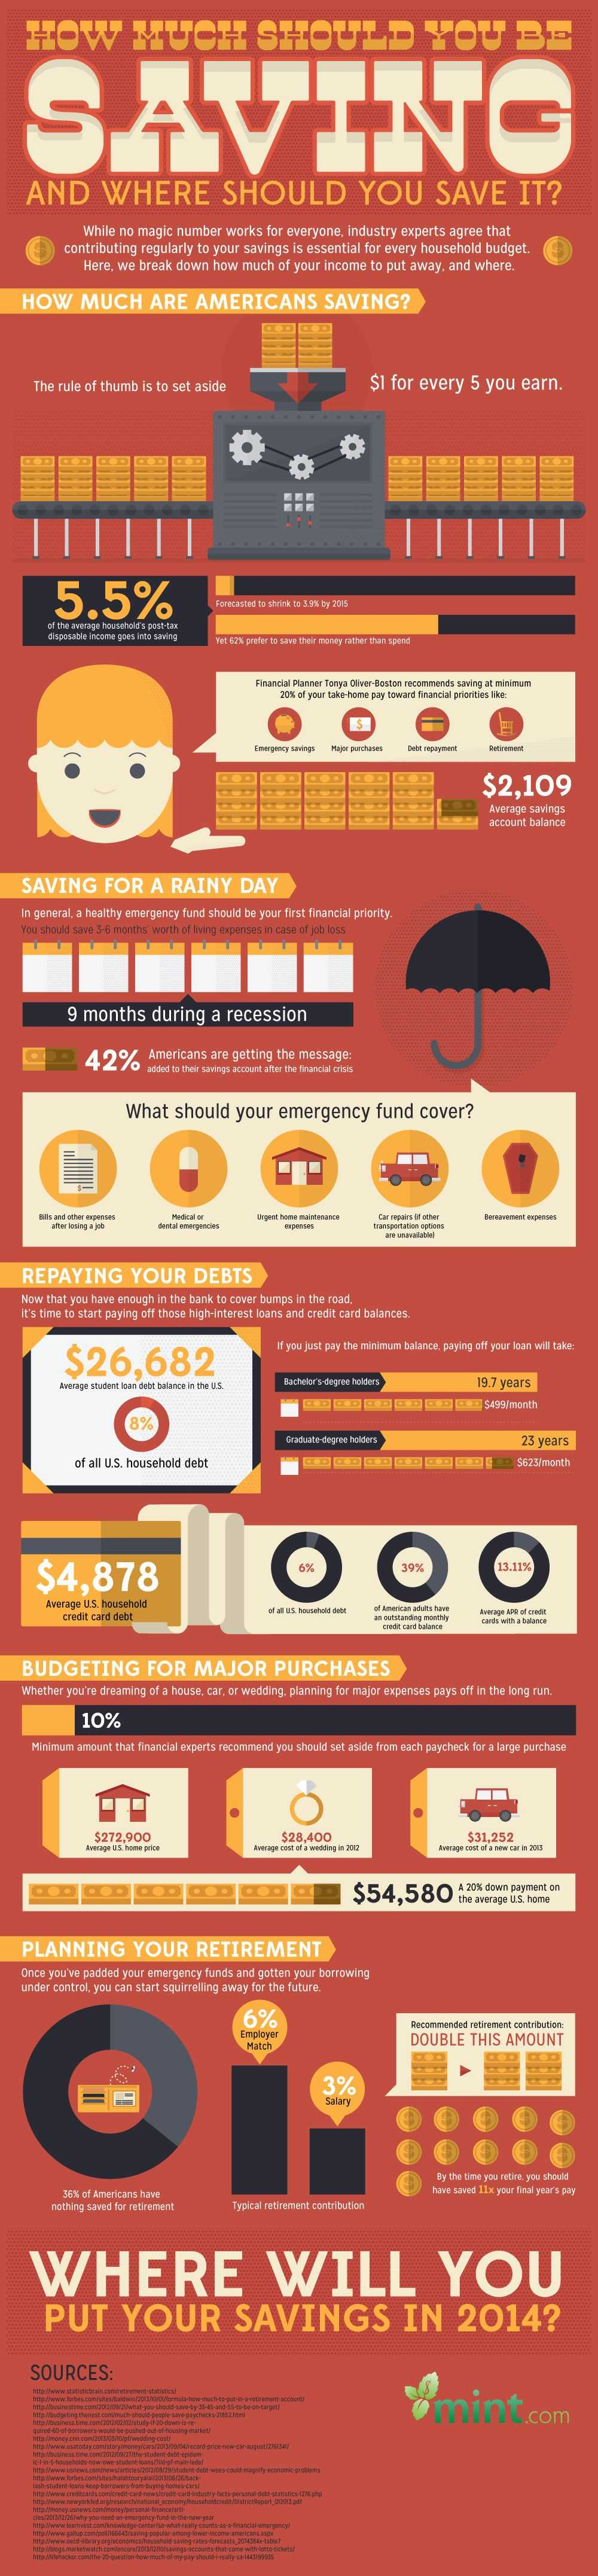 How Much Should You Be Saving And Where Should You Save It